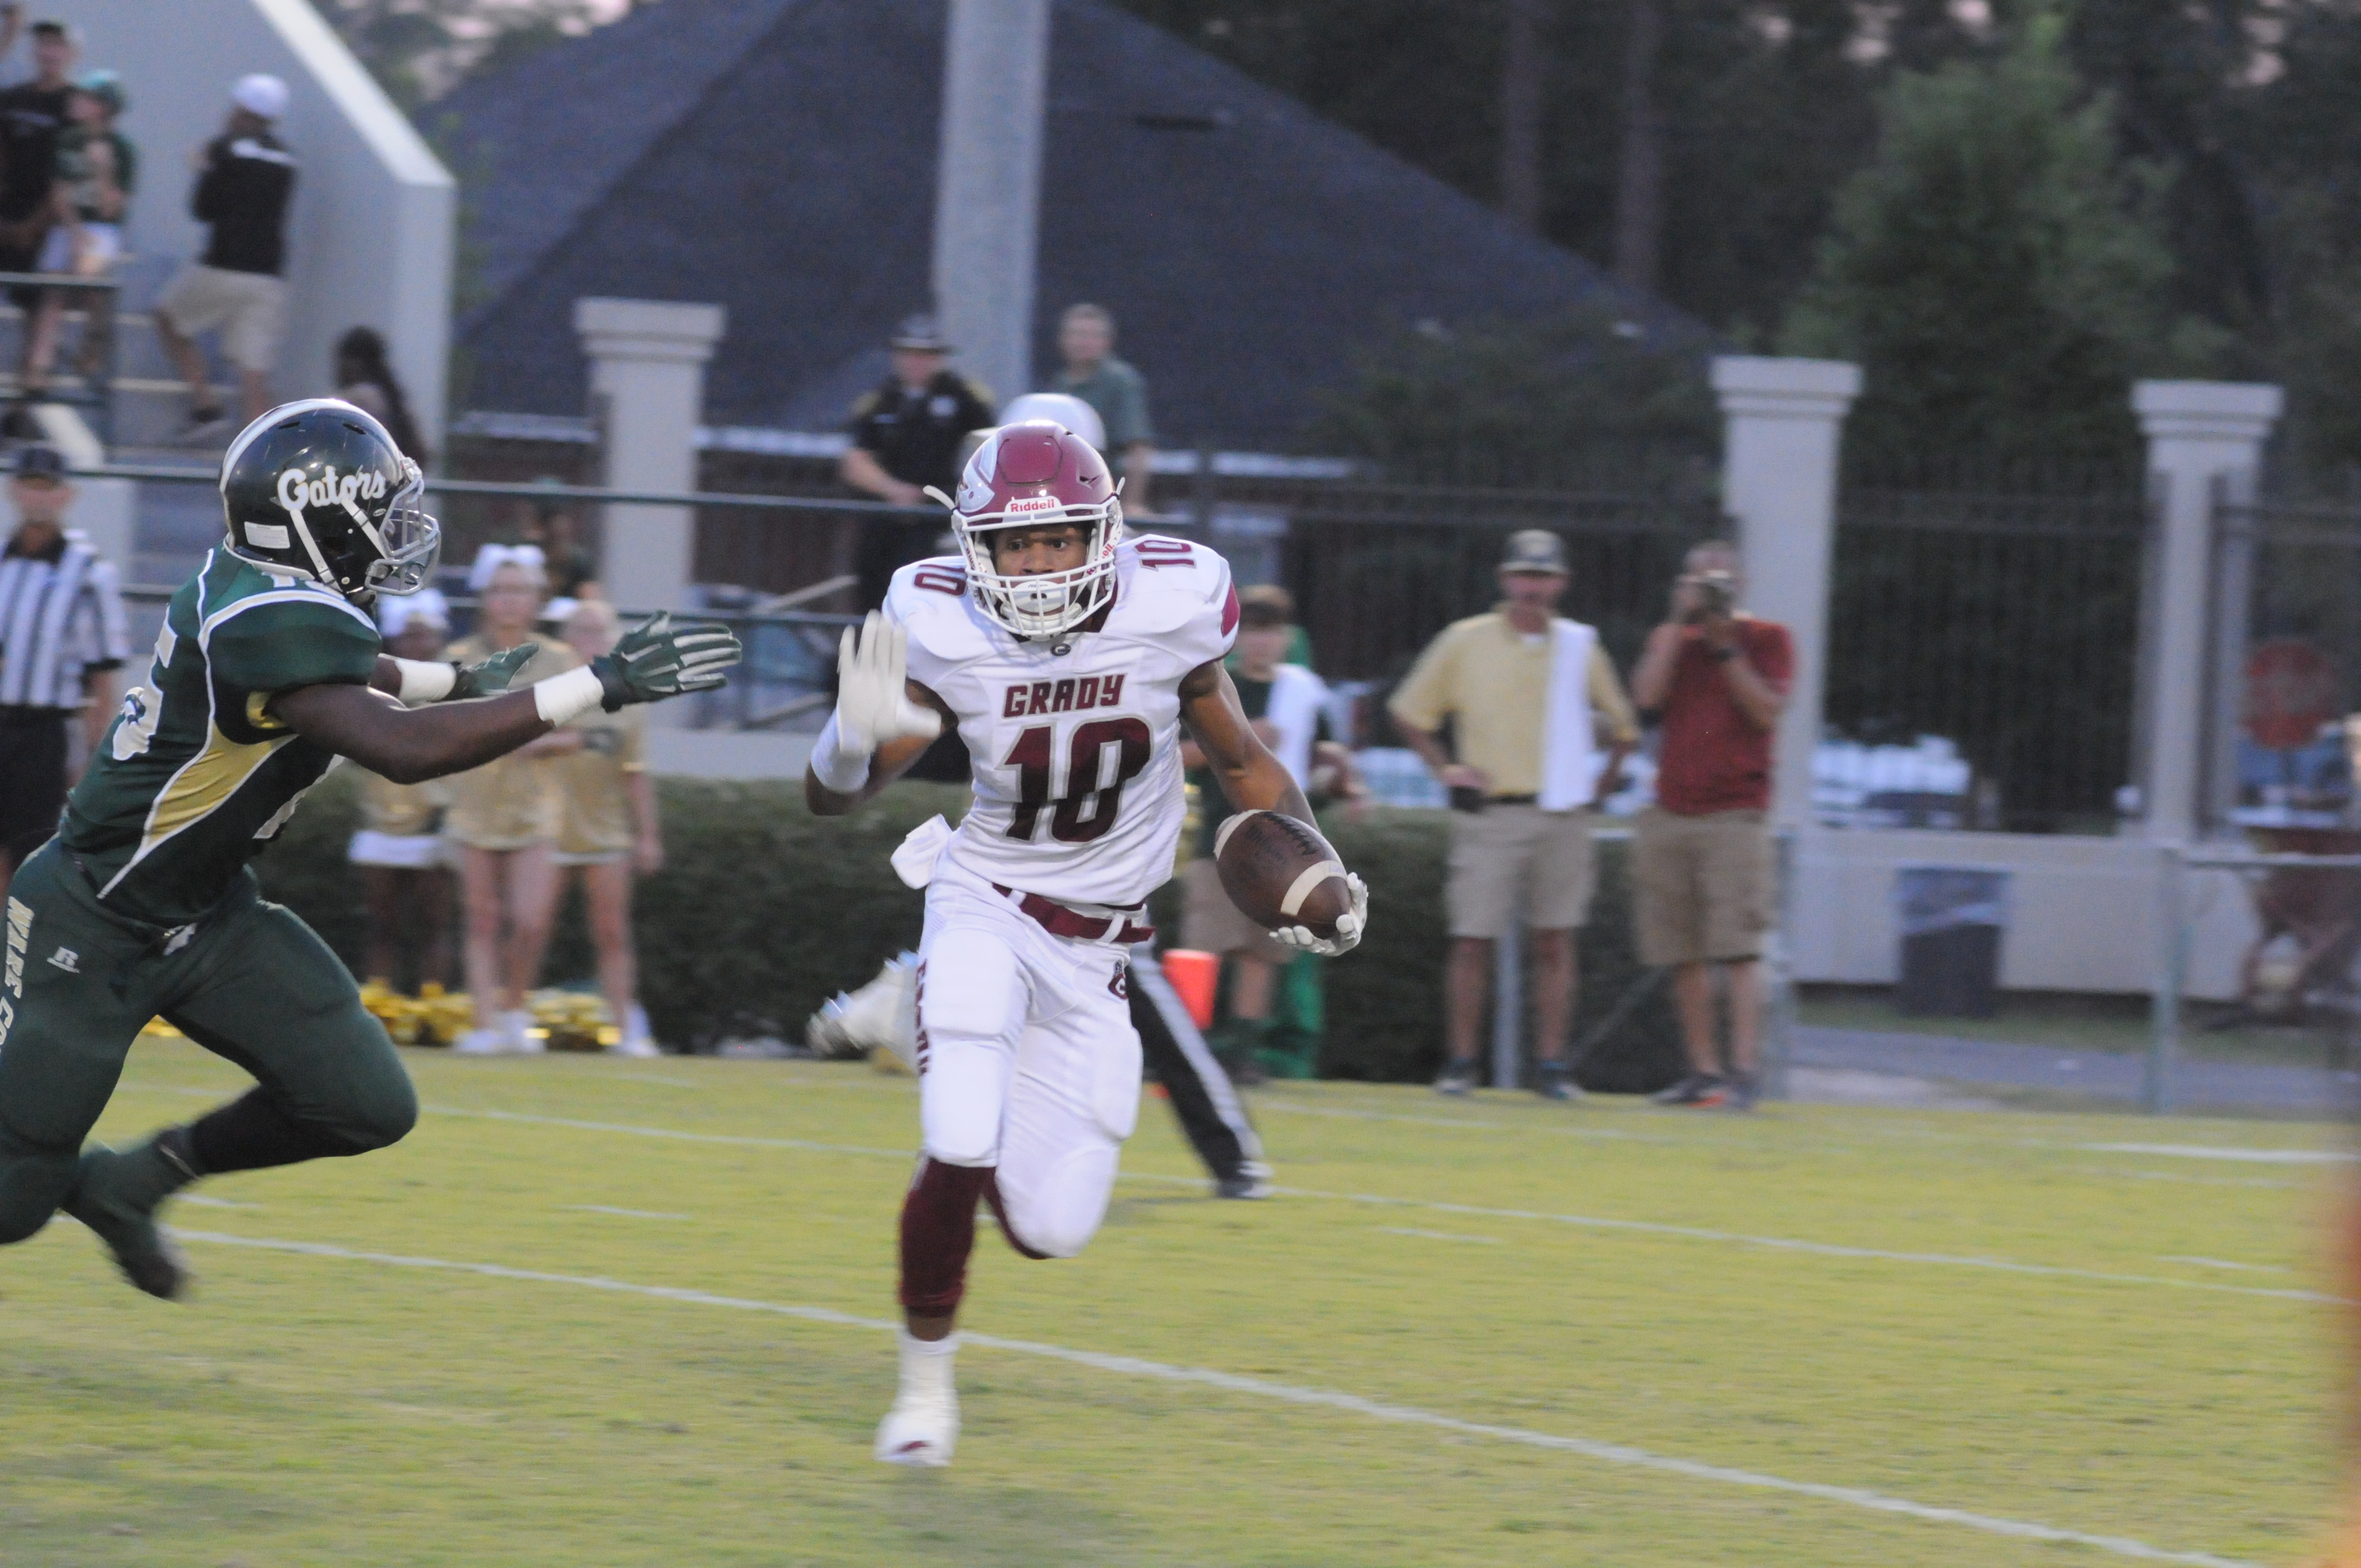 Senior Jacquez Sloan runs a jet sweep around Ware County defense for 11 yards.